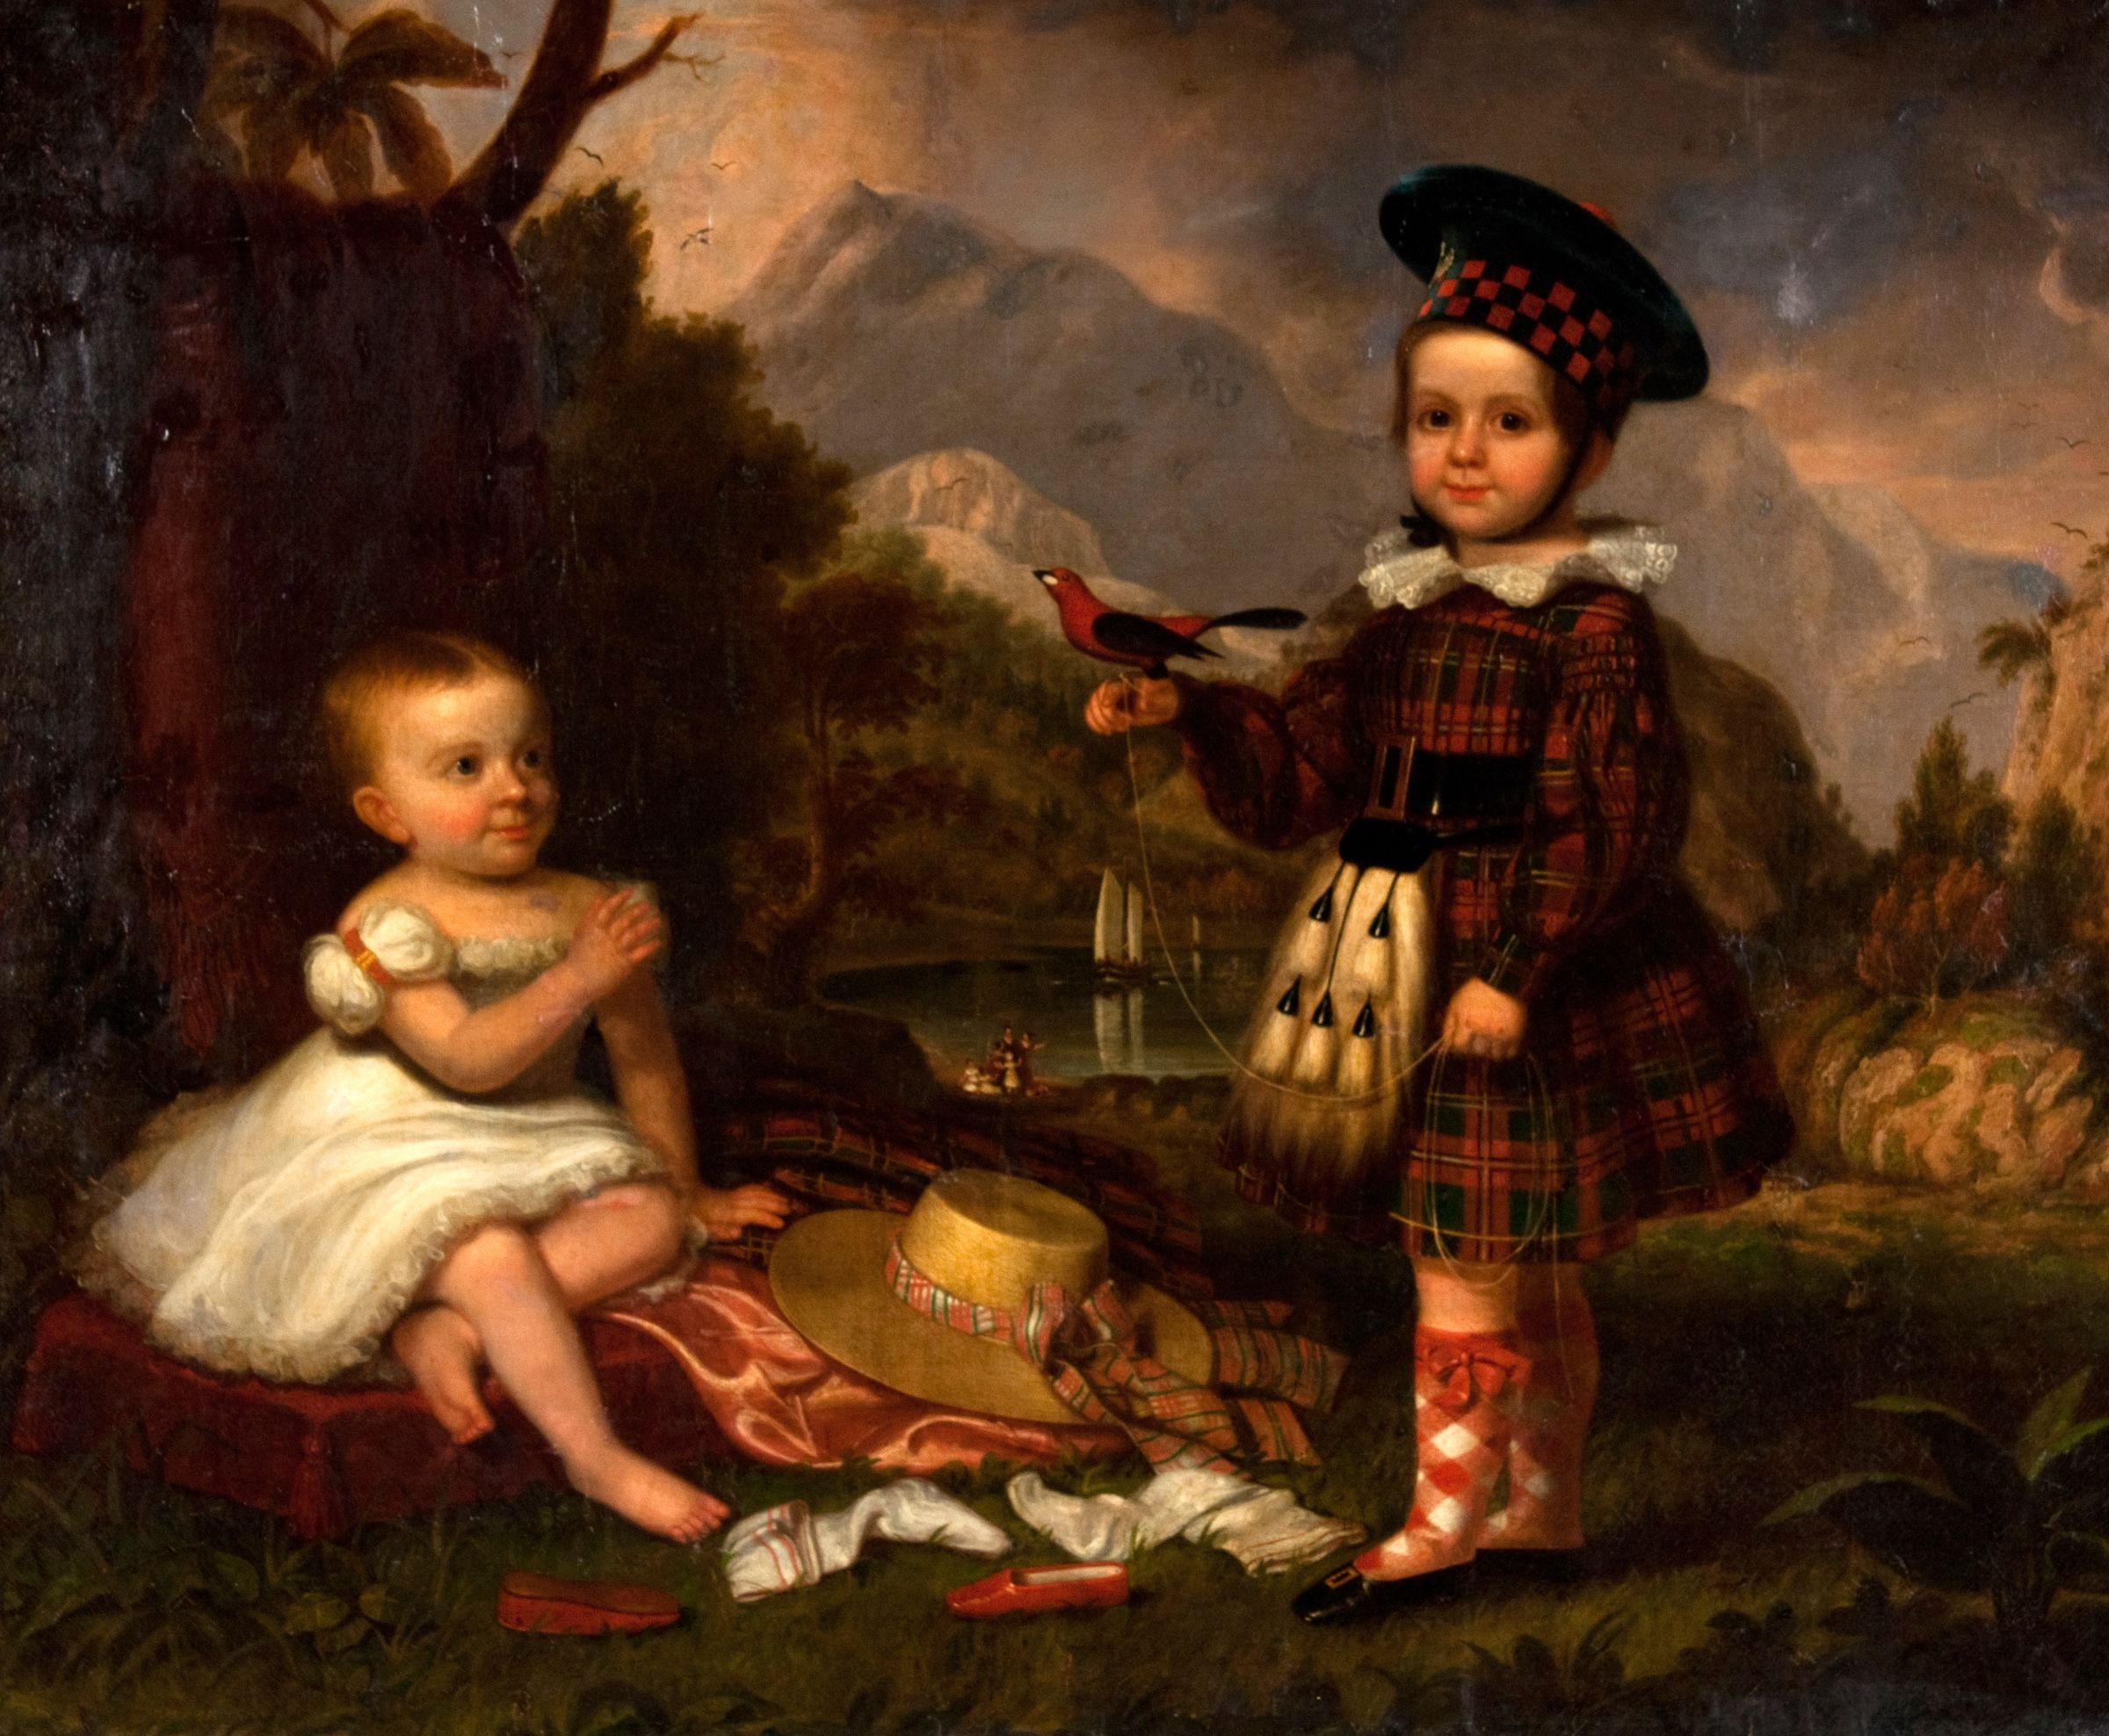 oil painting 19th century - Google Search | scotland ...